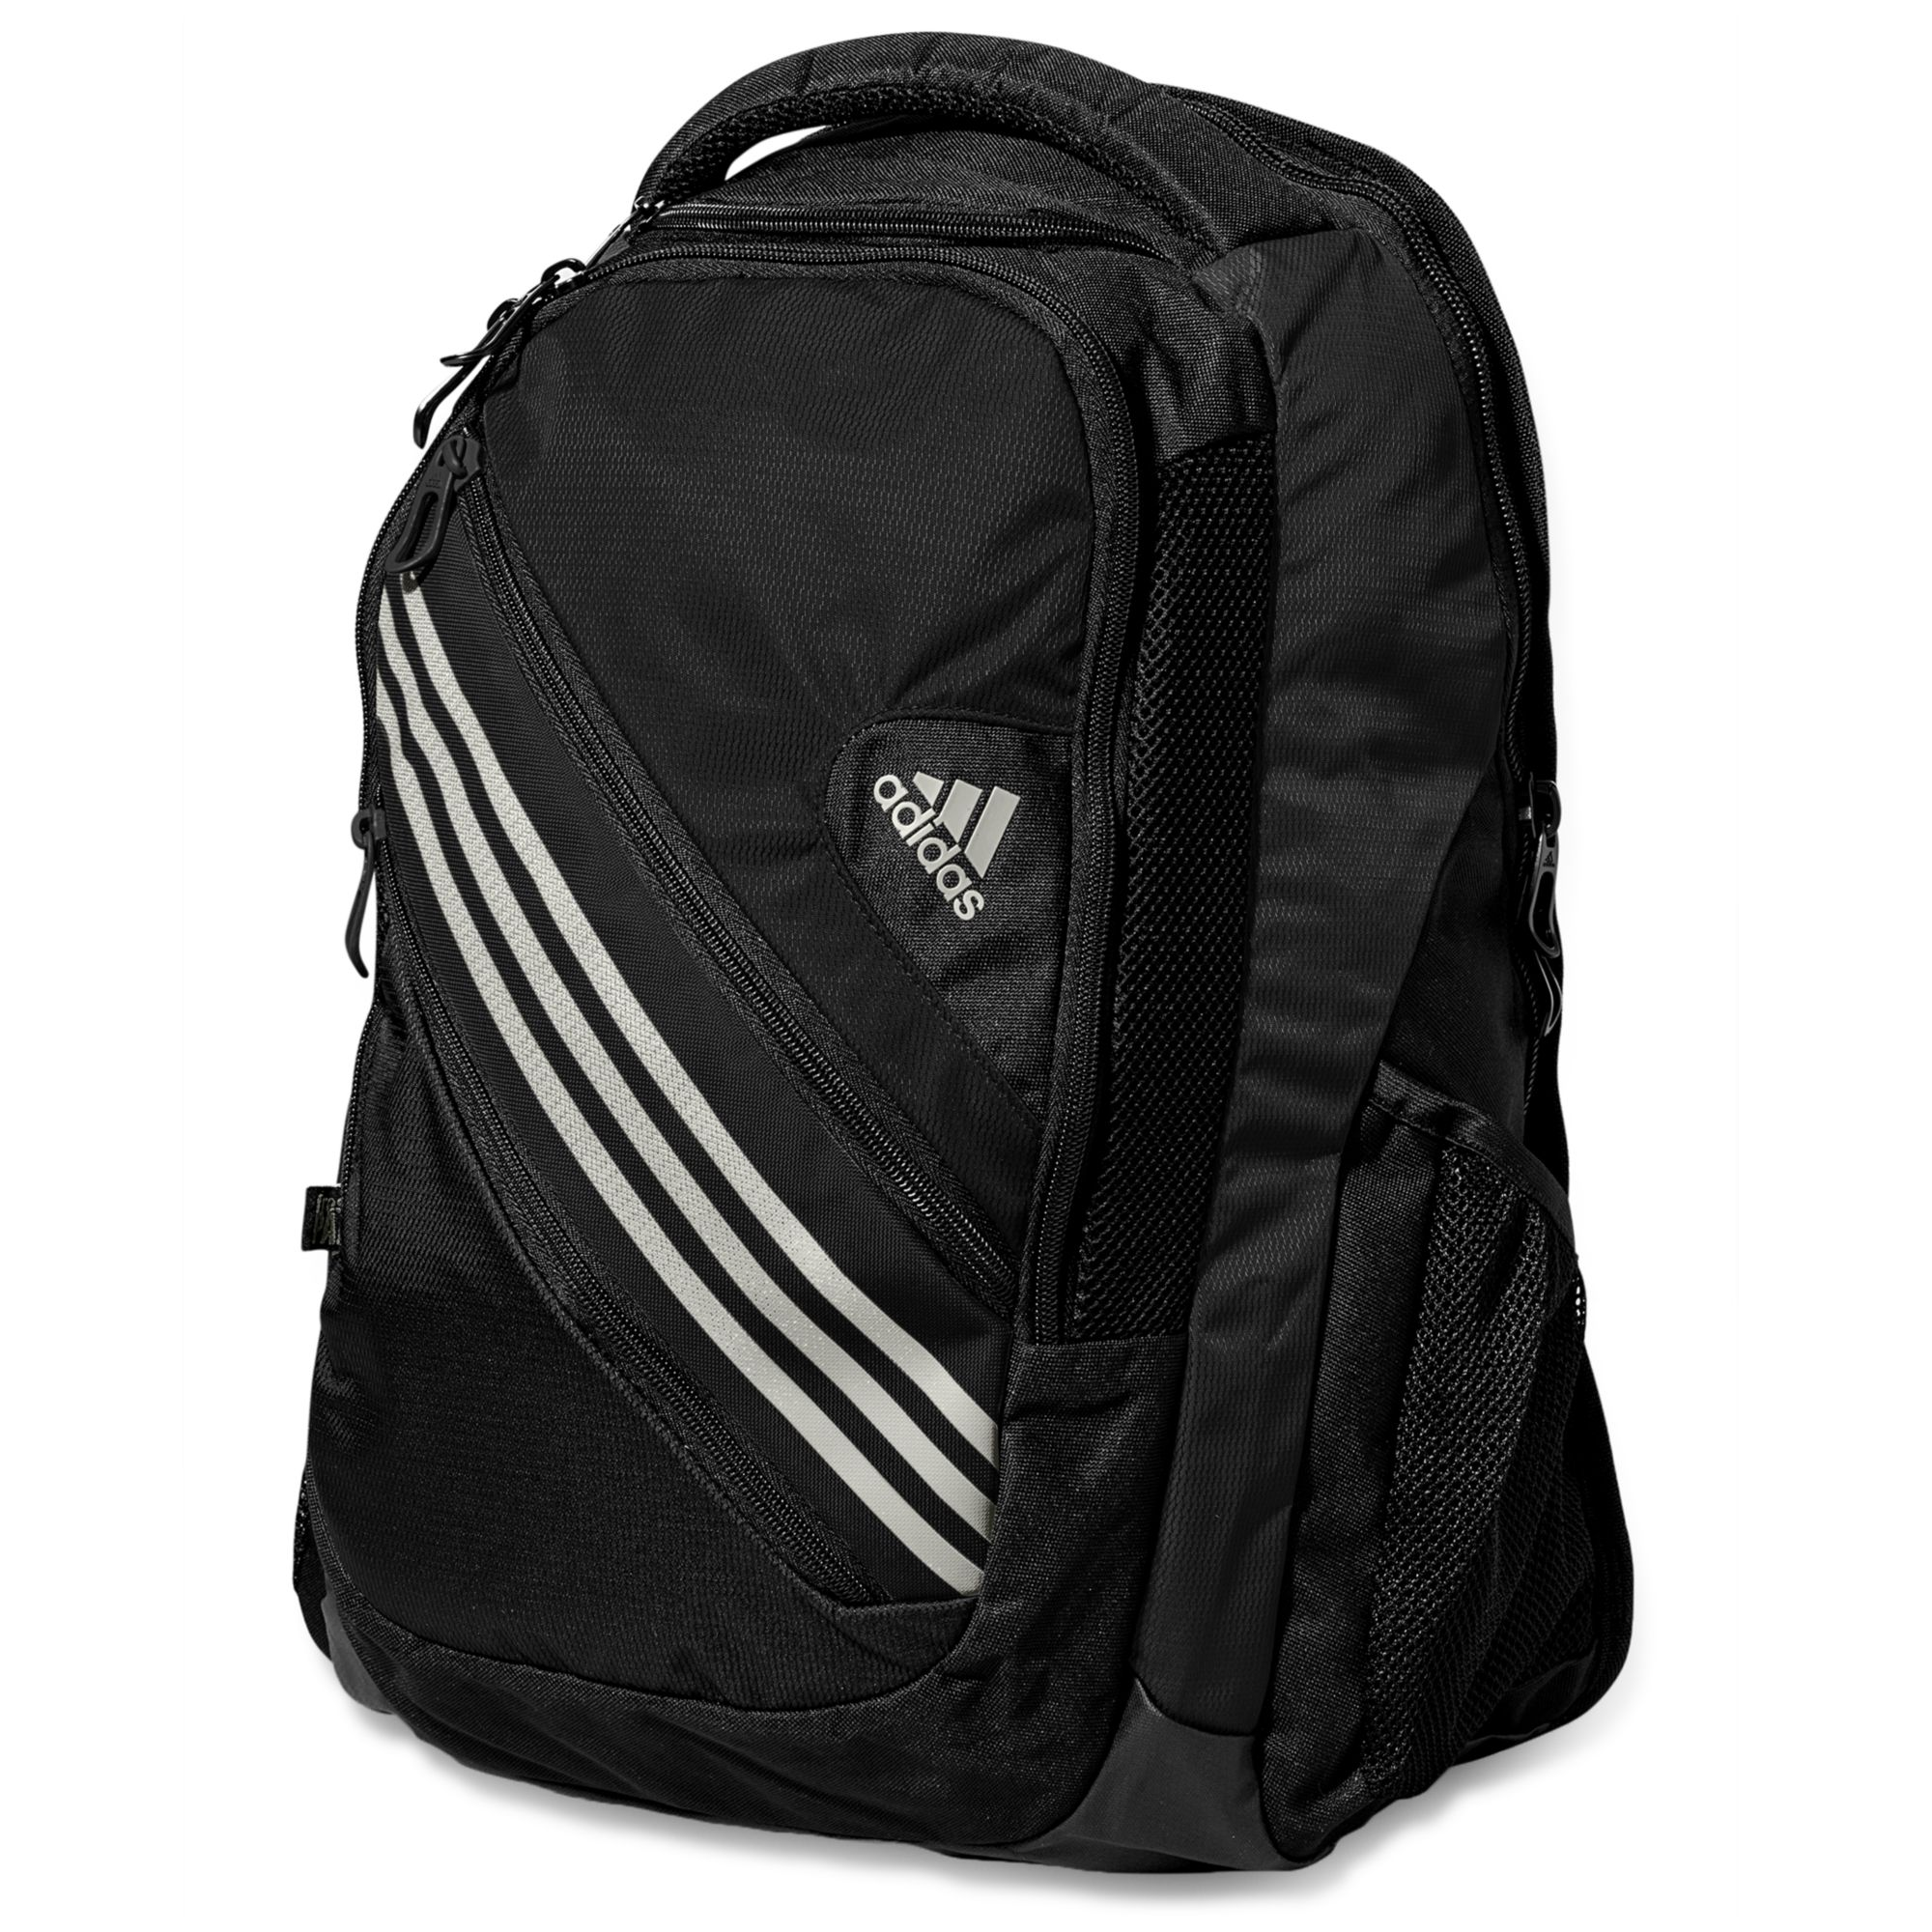 Adidas Climacool Speed Iii Backpack In Black For Men Lyst